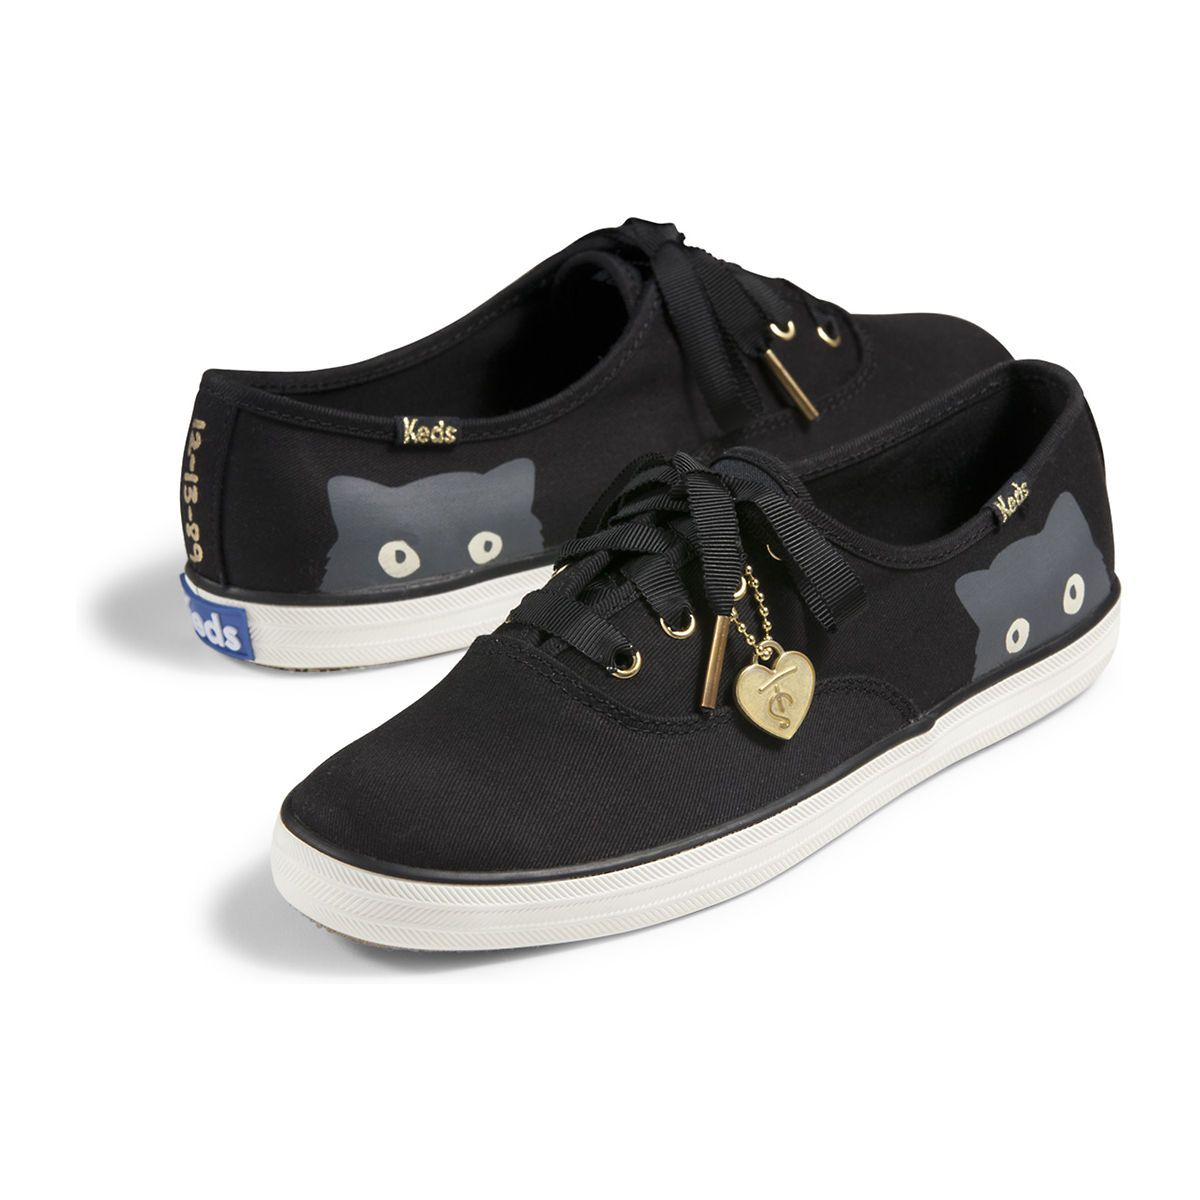 keds shoes for women black and white